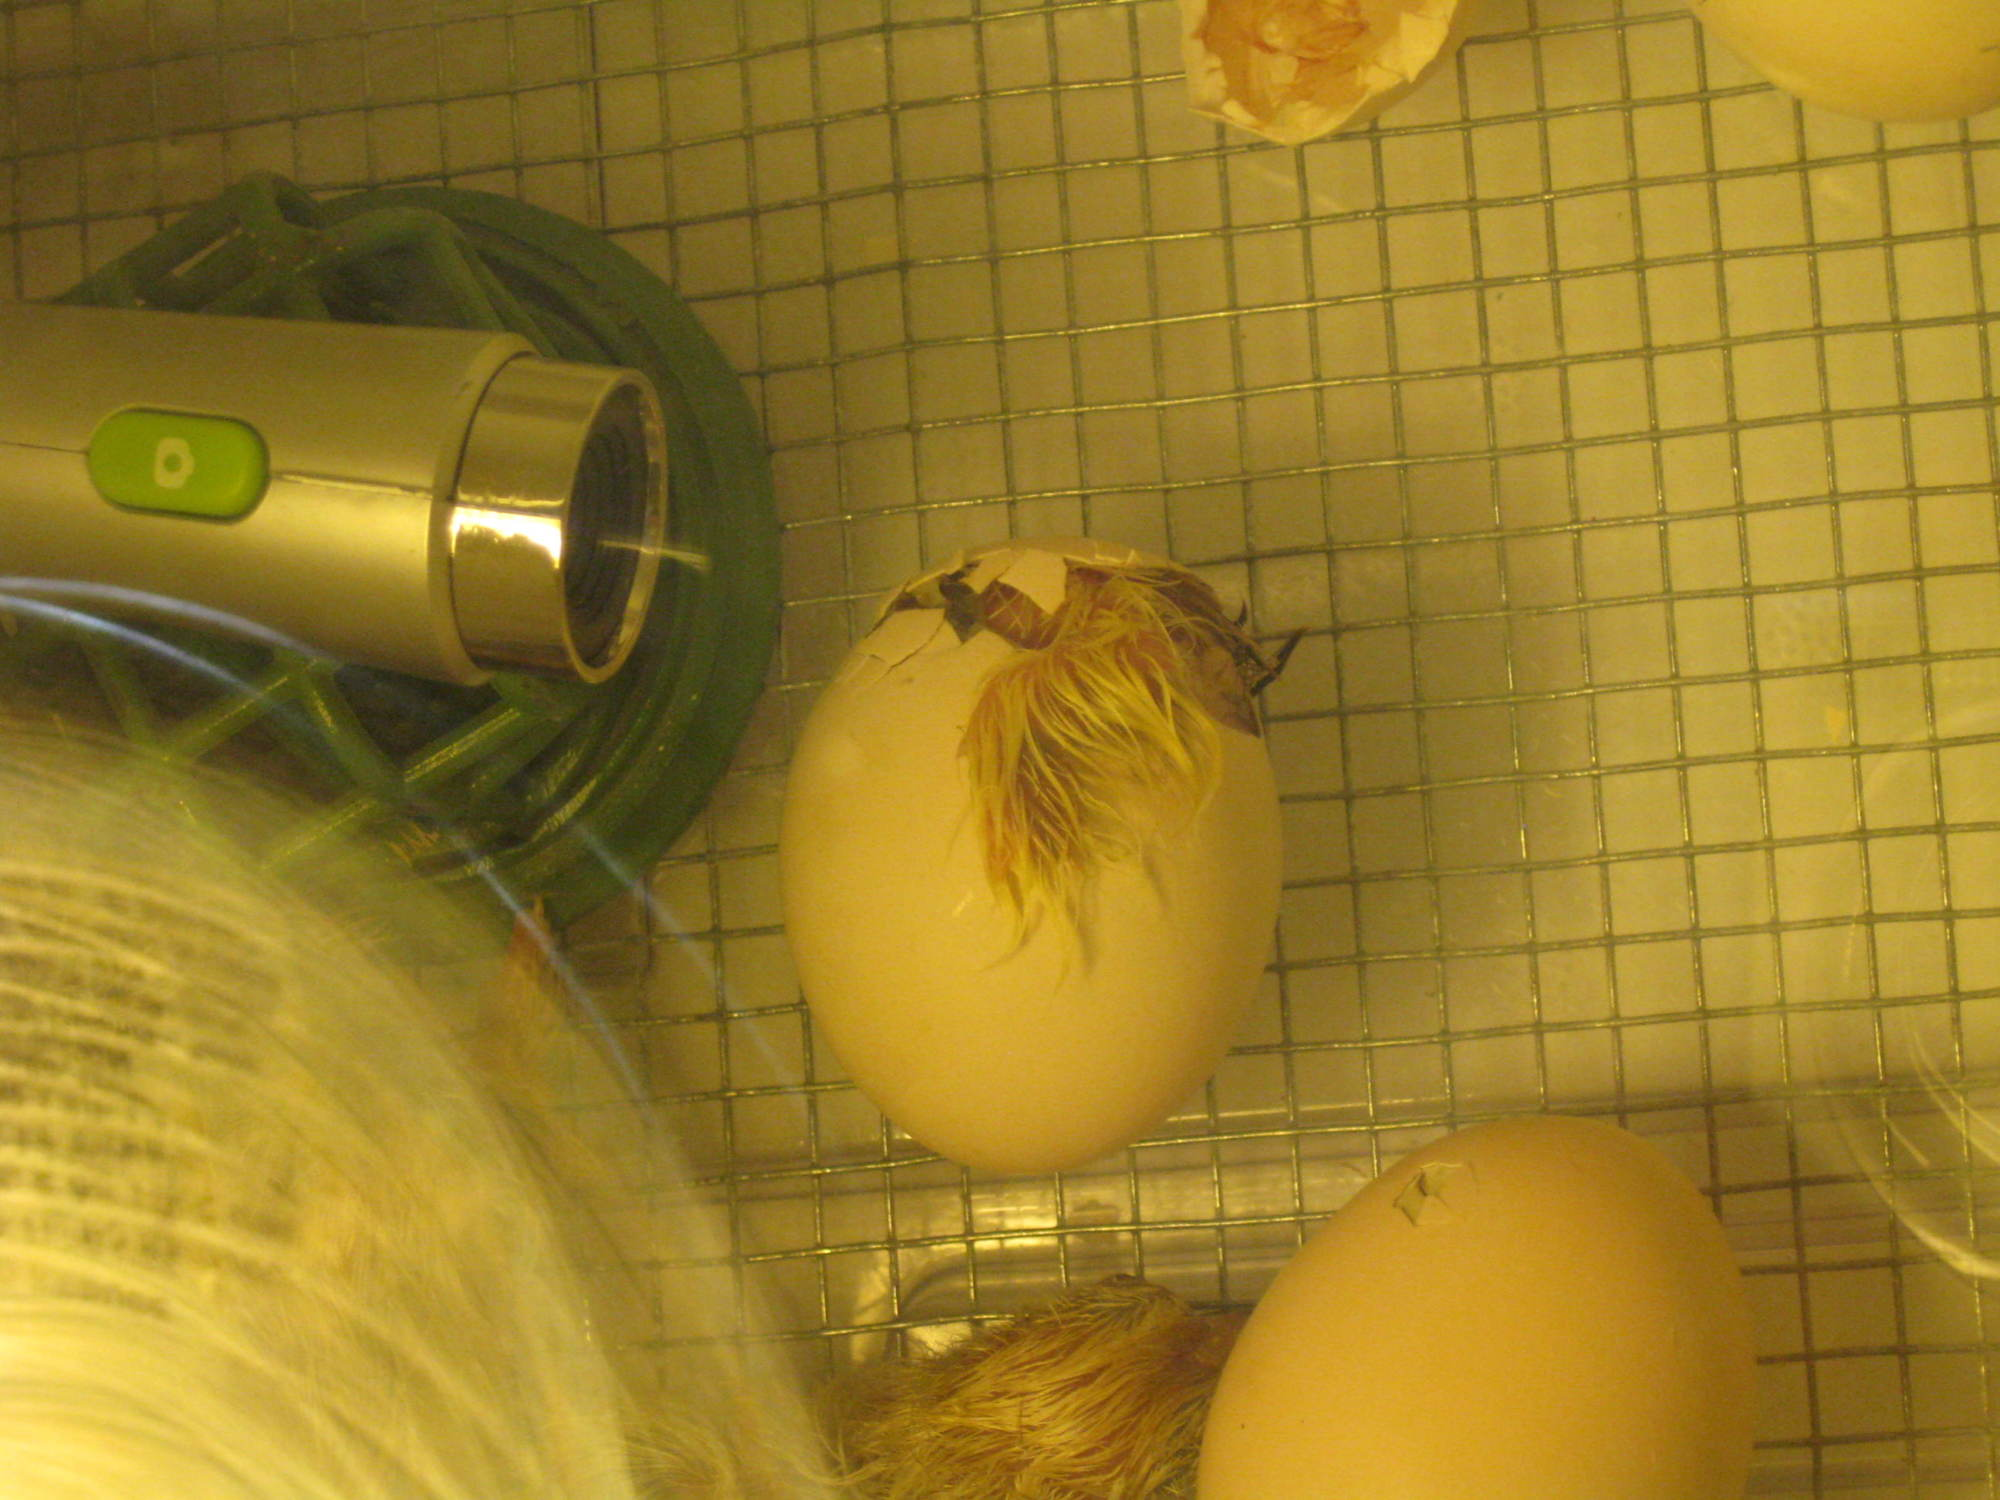 Camera and egg hatching